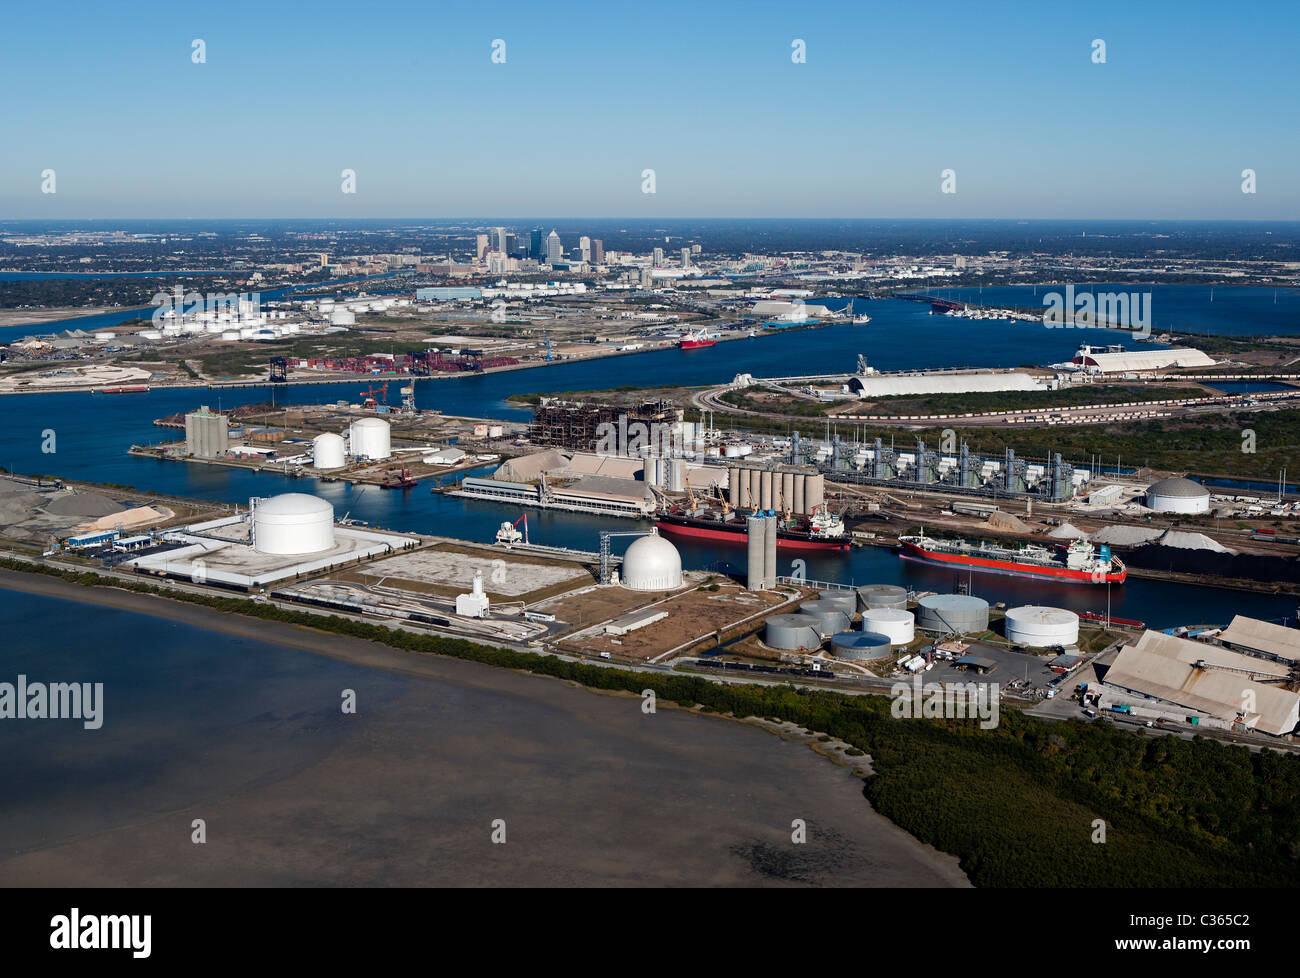 aerial view above Kinder Morgan Bulk Terminals Tampa Florida - Stock Image